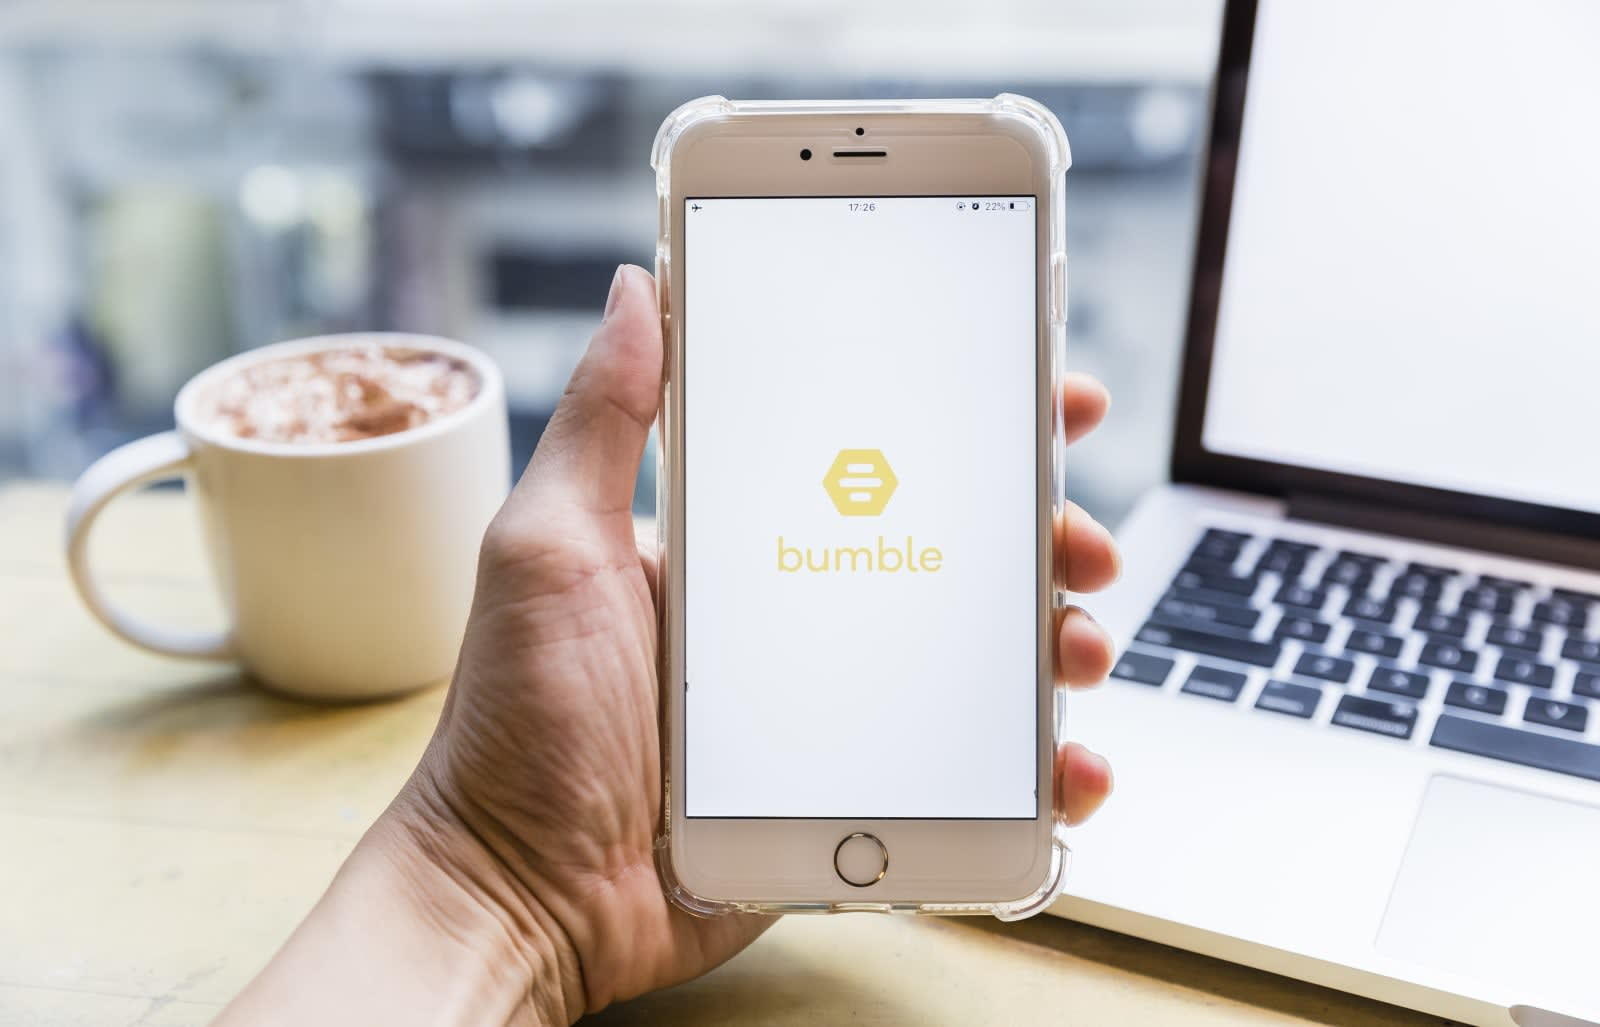 Bumble Spotlight makes you the center of attention for 30 minutes